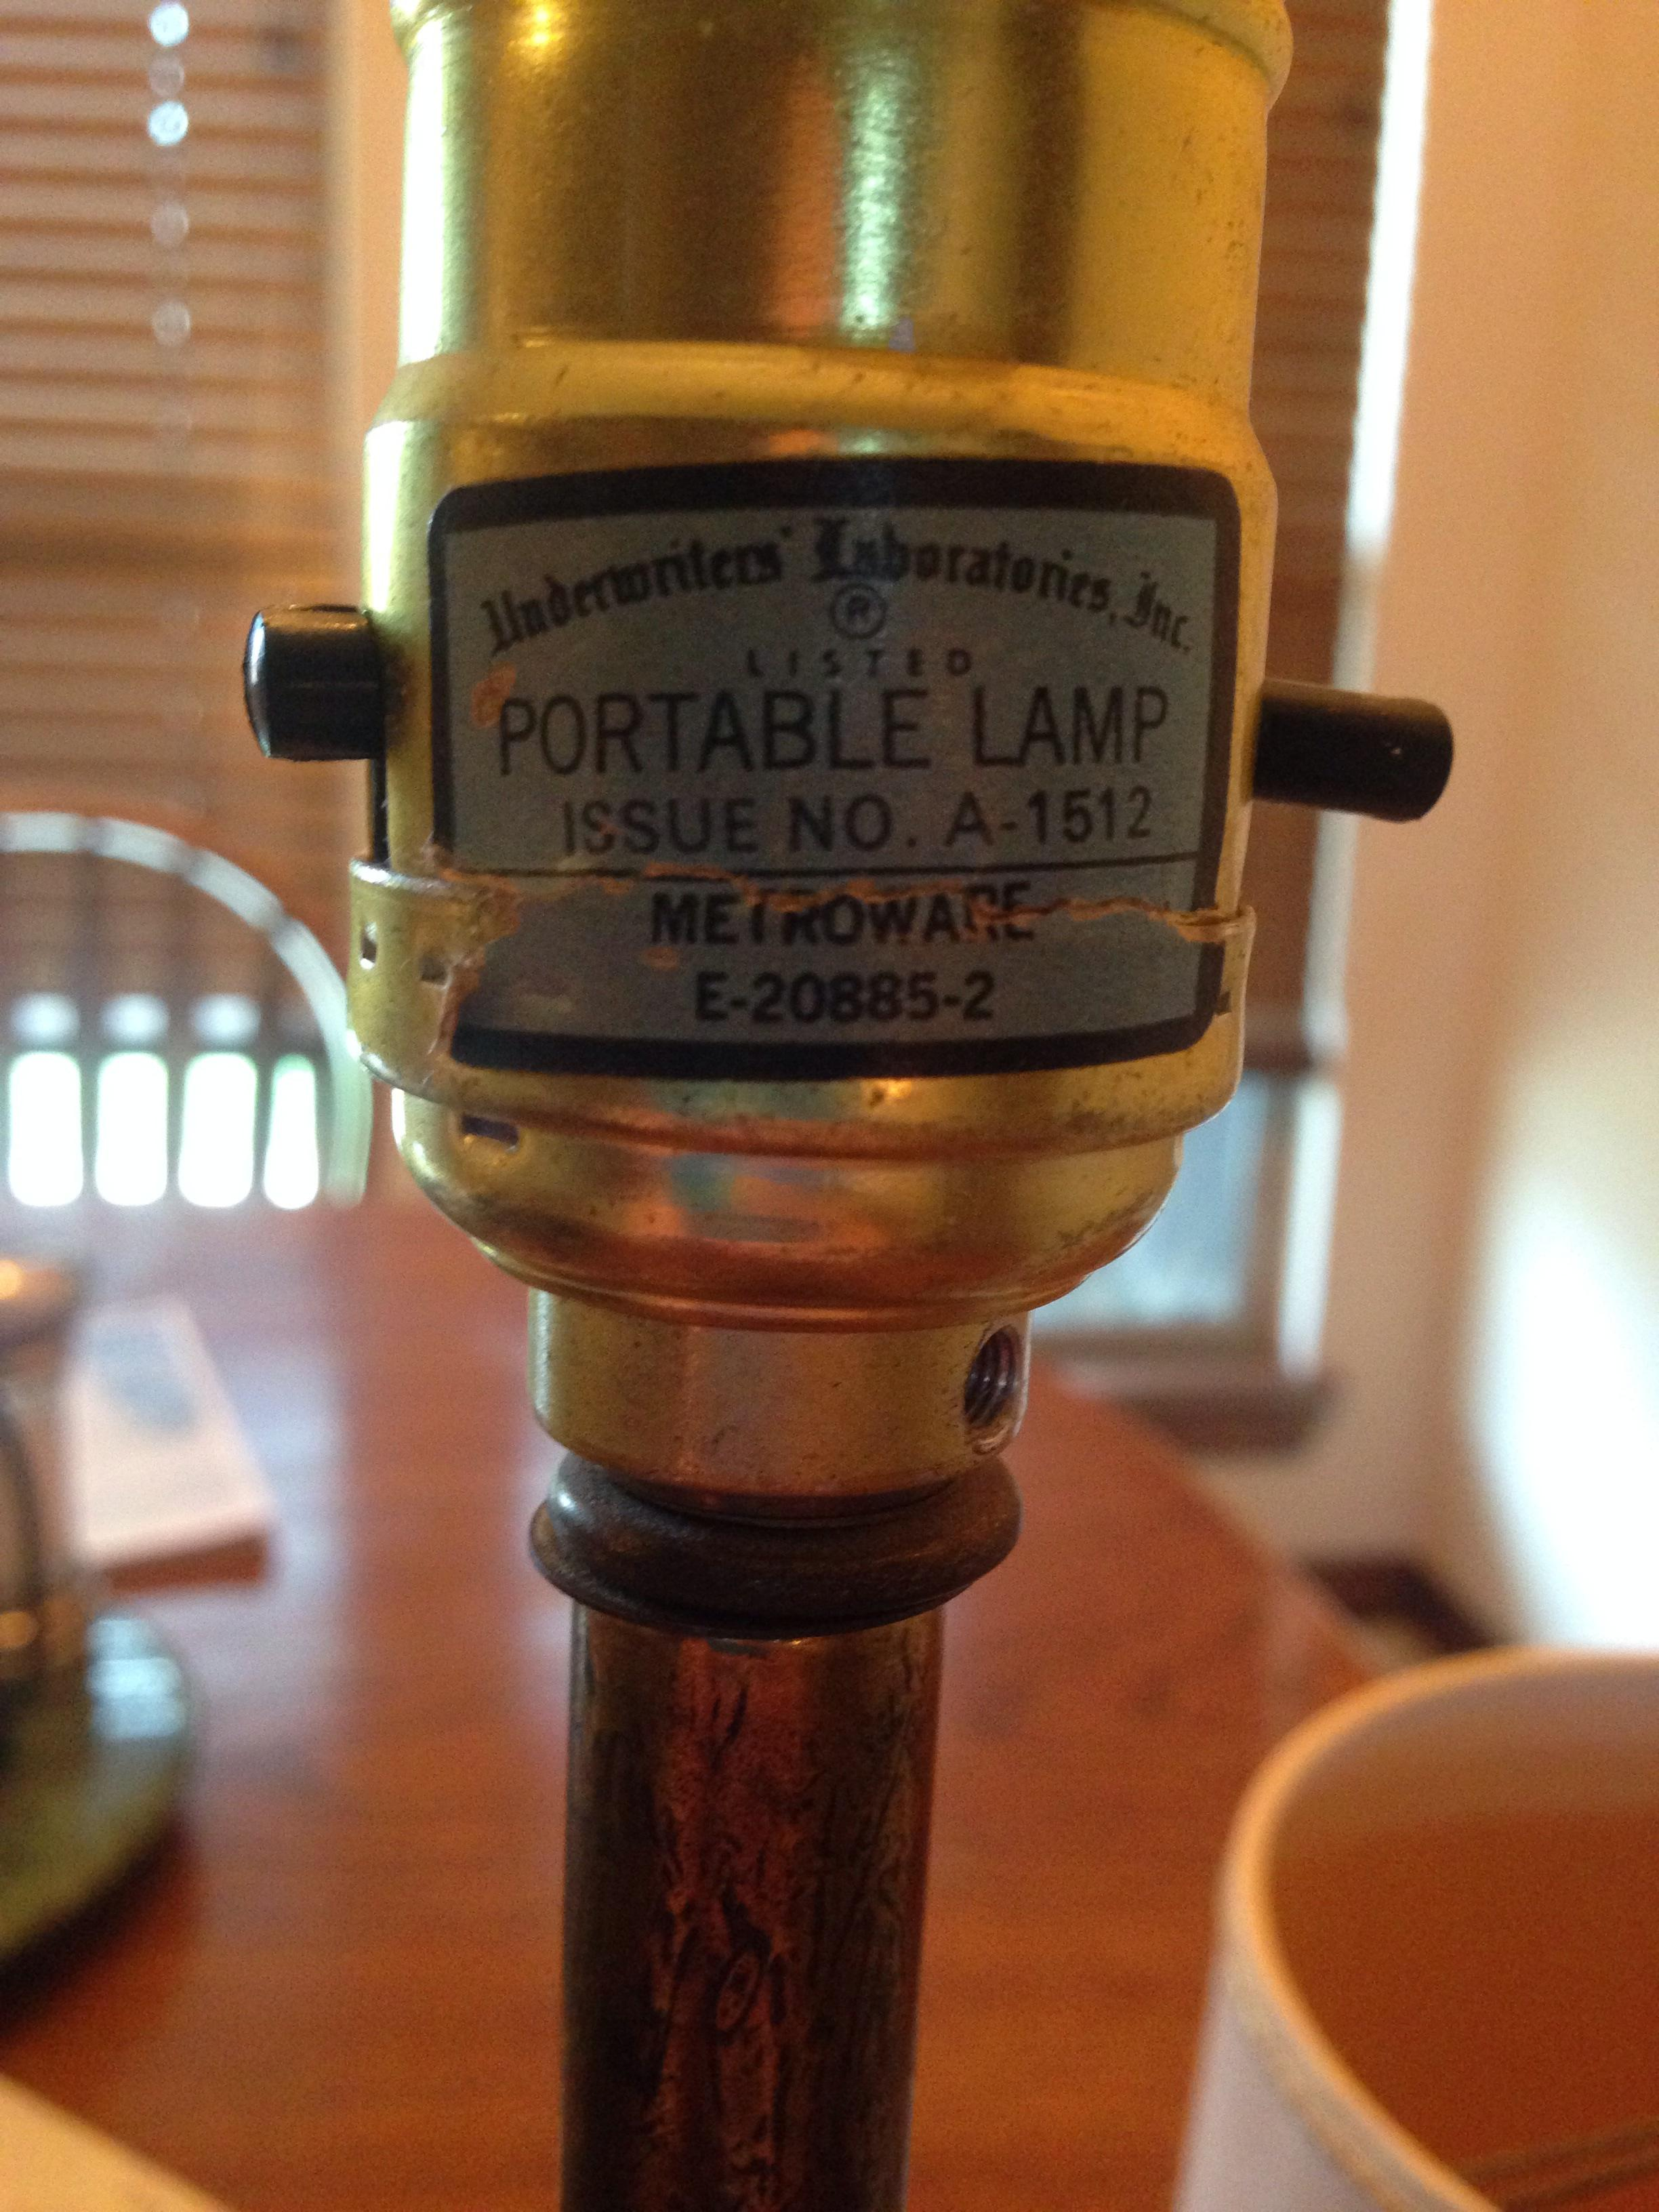 The need for underwriters laboratories inc portable lamp | Warisan ...